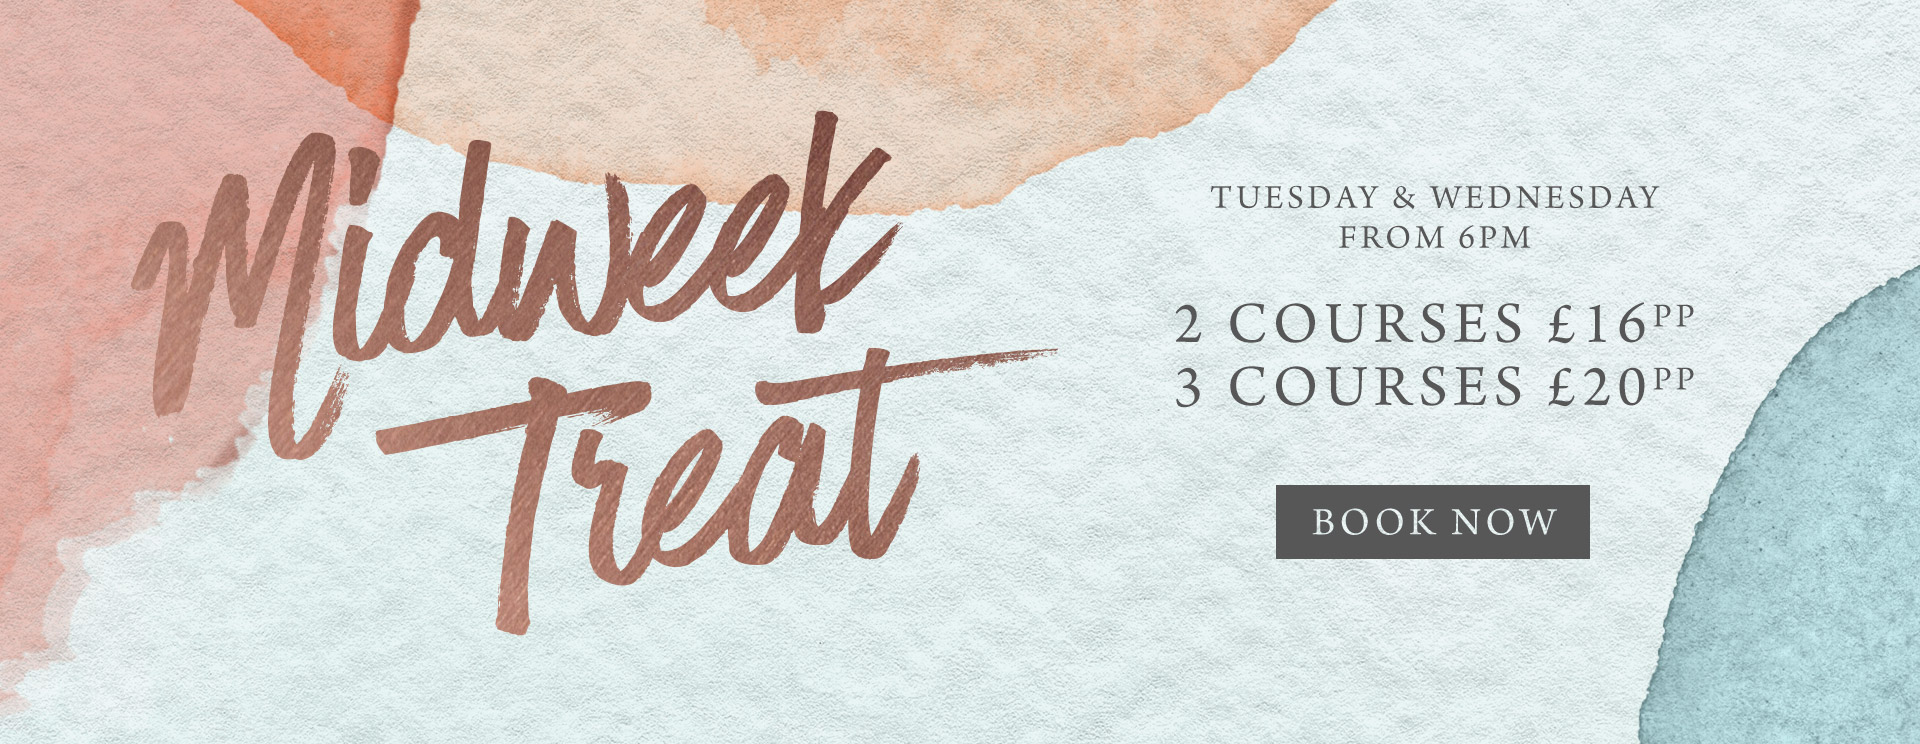 Midweek treat at The Kingfisher - Book now